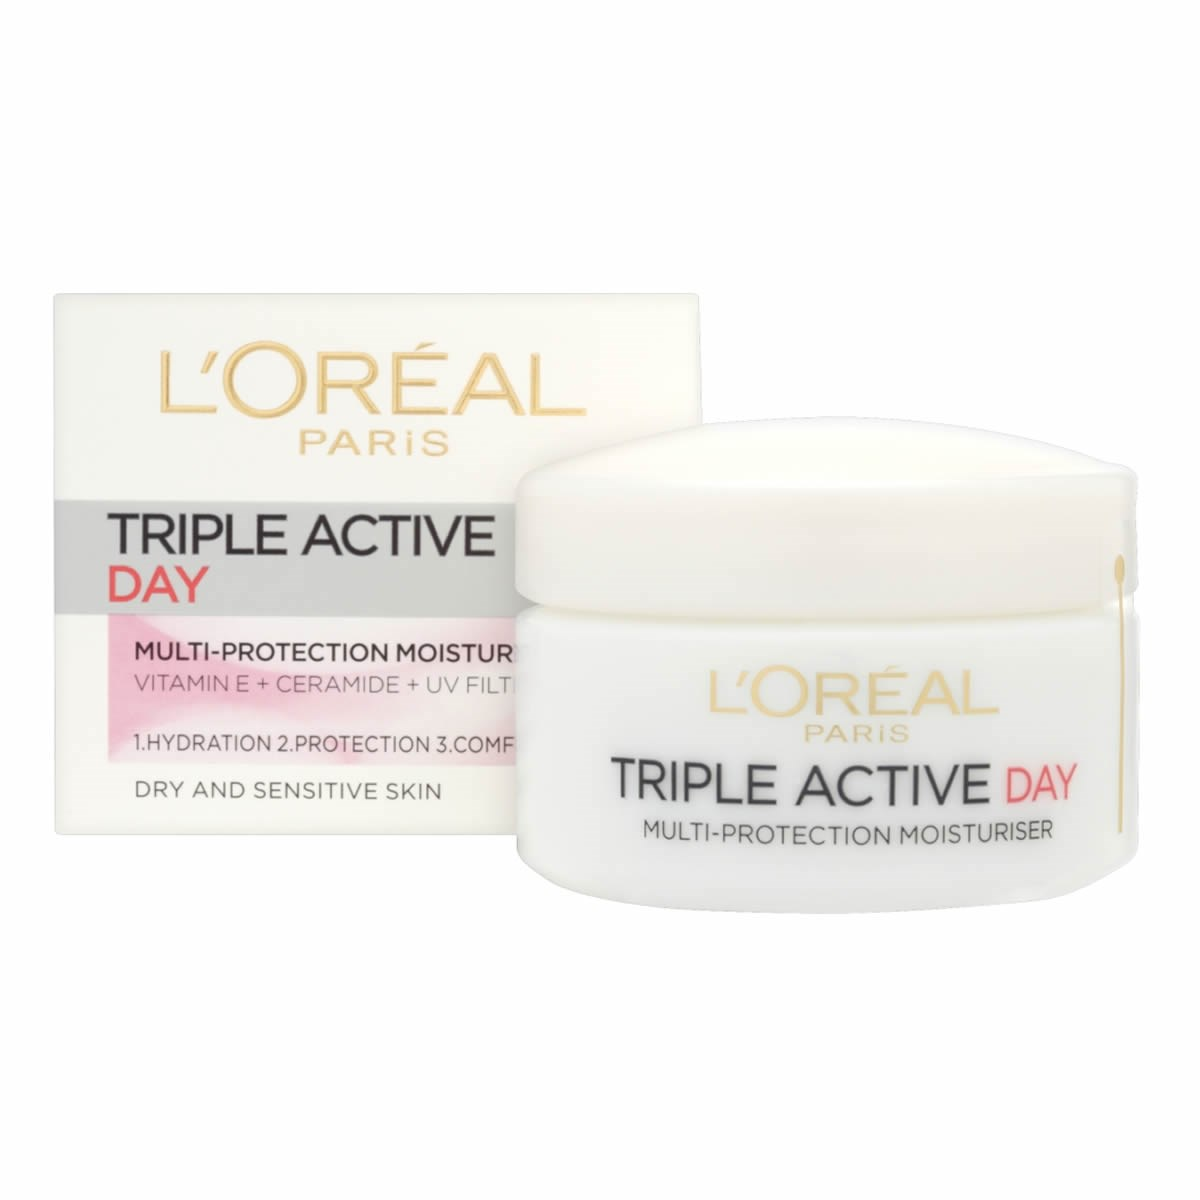 L'Oreal Paris Triple Active Day Moisturiser  - Dry & Sensitive Skin